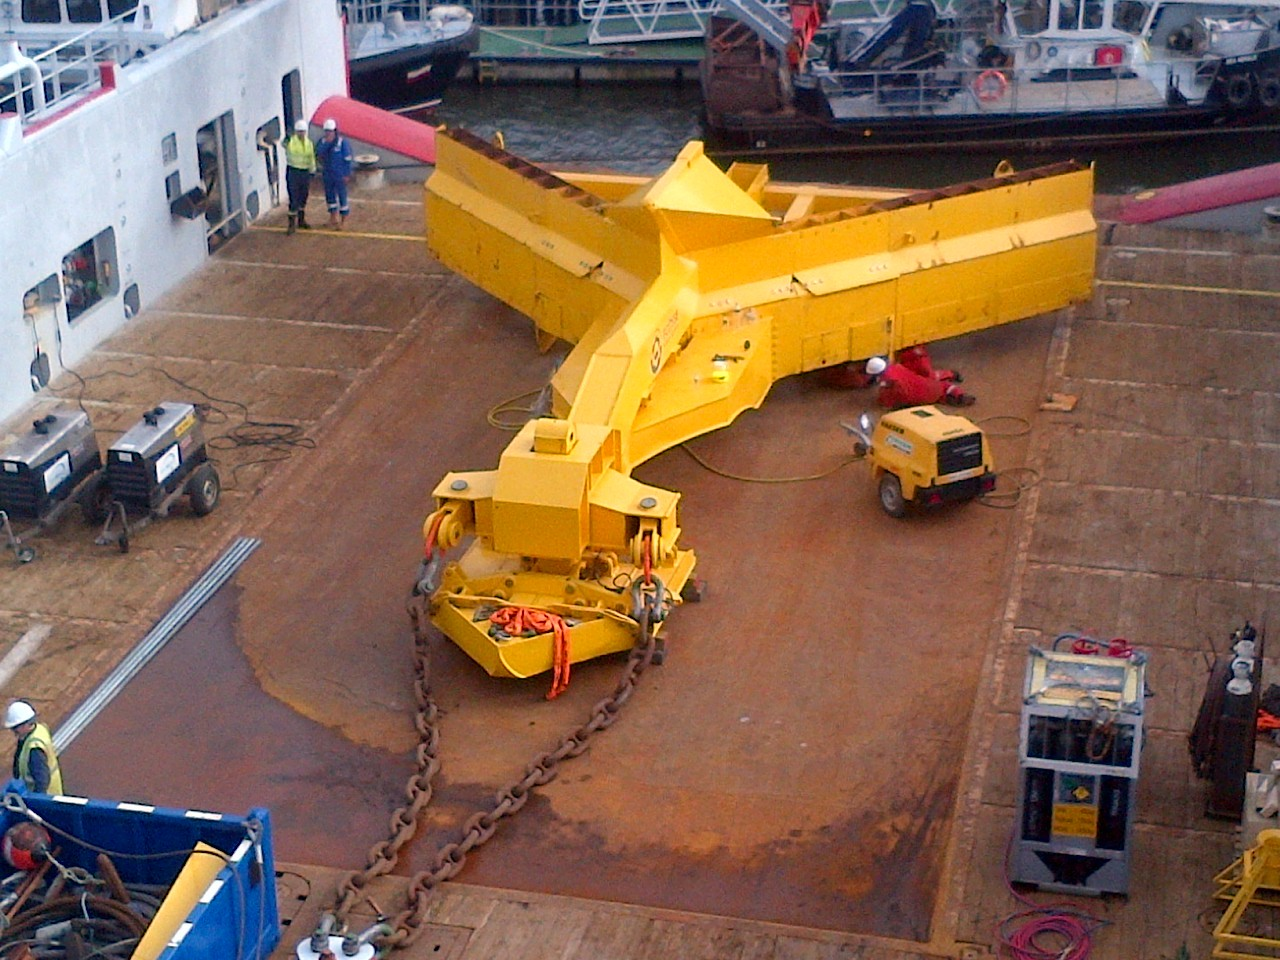 Ecosse Subsea Systems' SCAR Plough 1